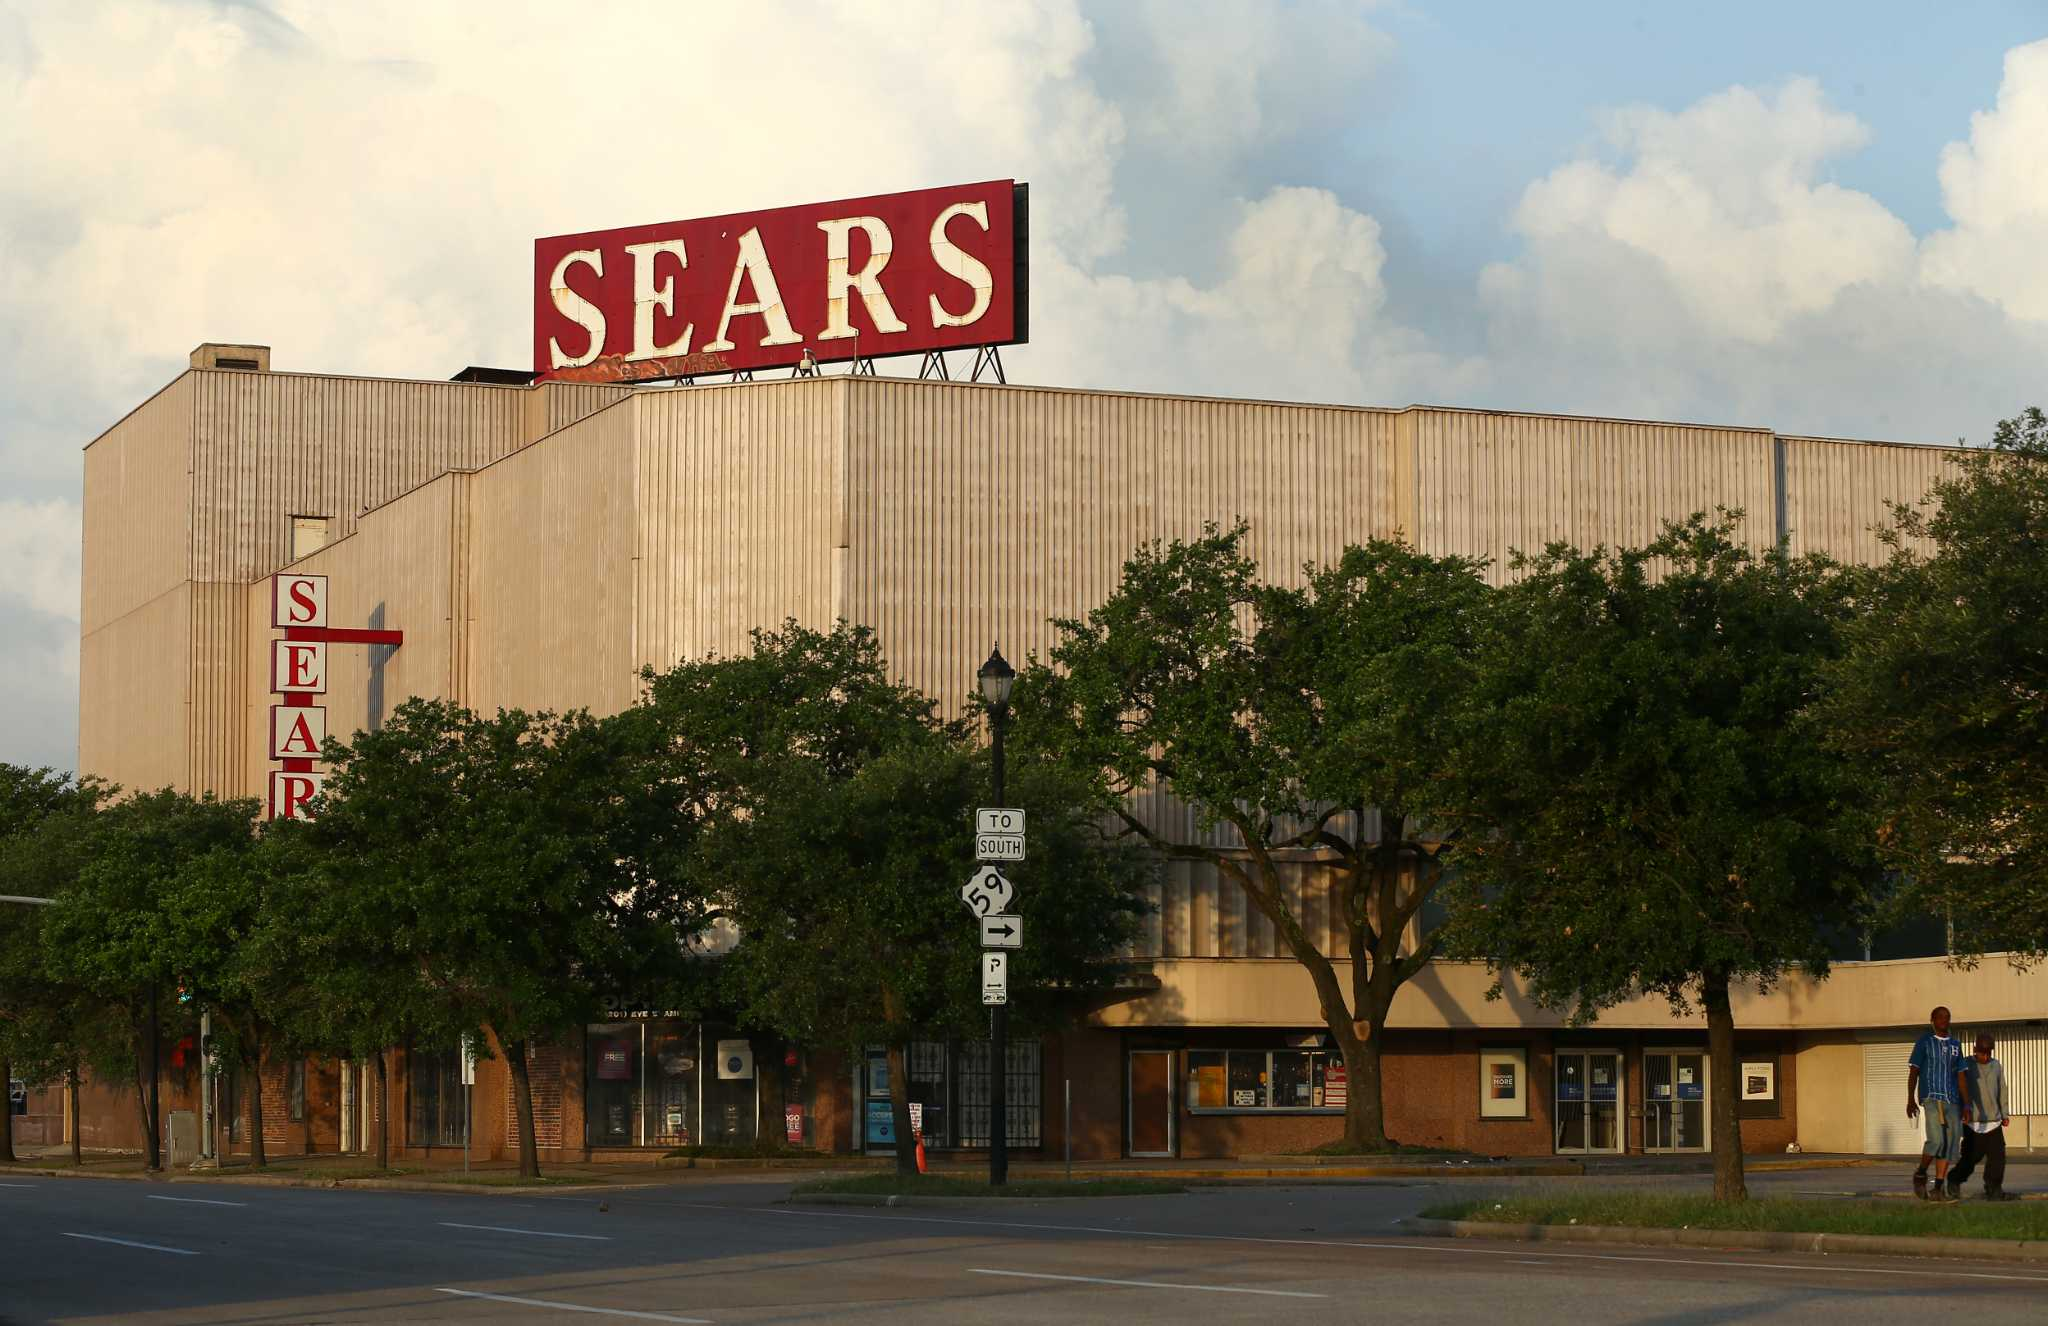 Its Wish Book heyday behind it, Sears struggles in new era of retail ...